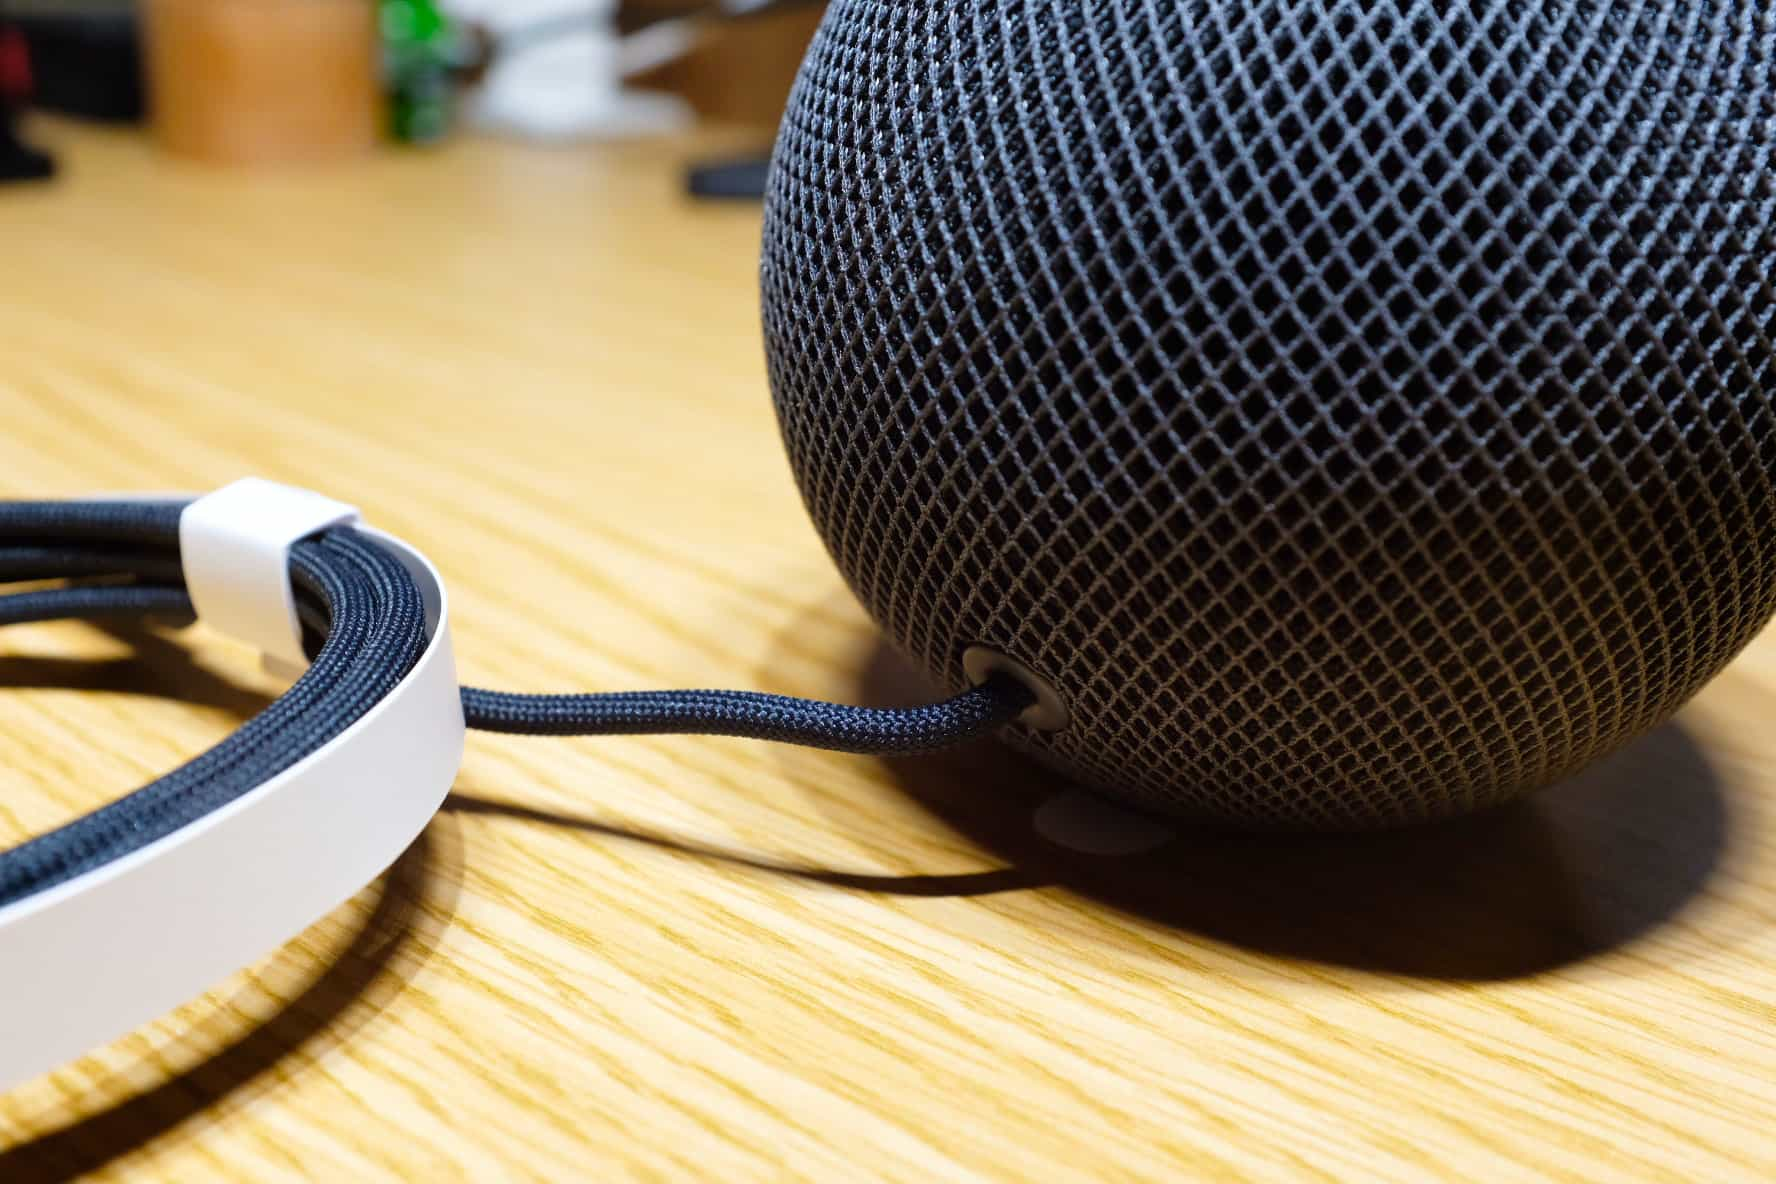 HomePod mini ケーブル